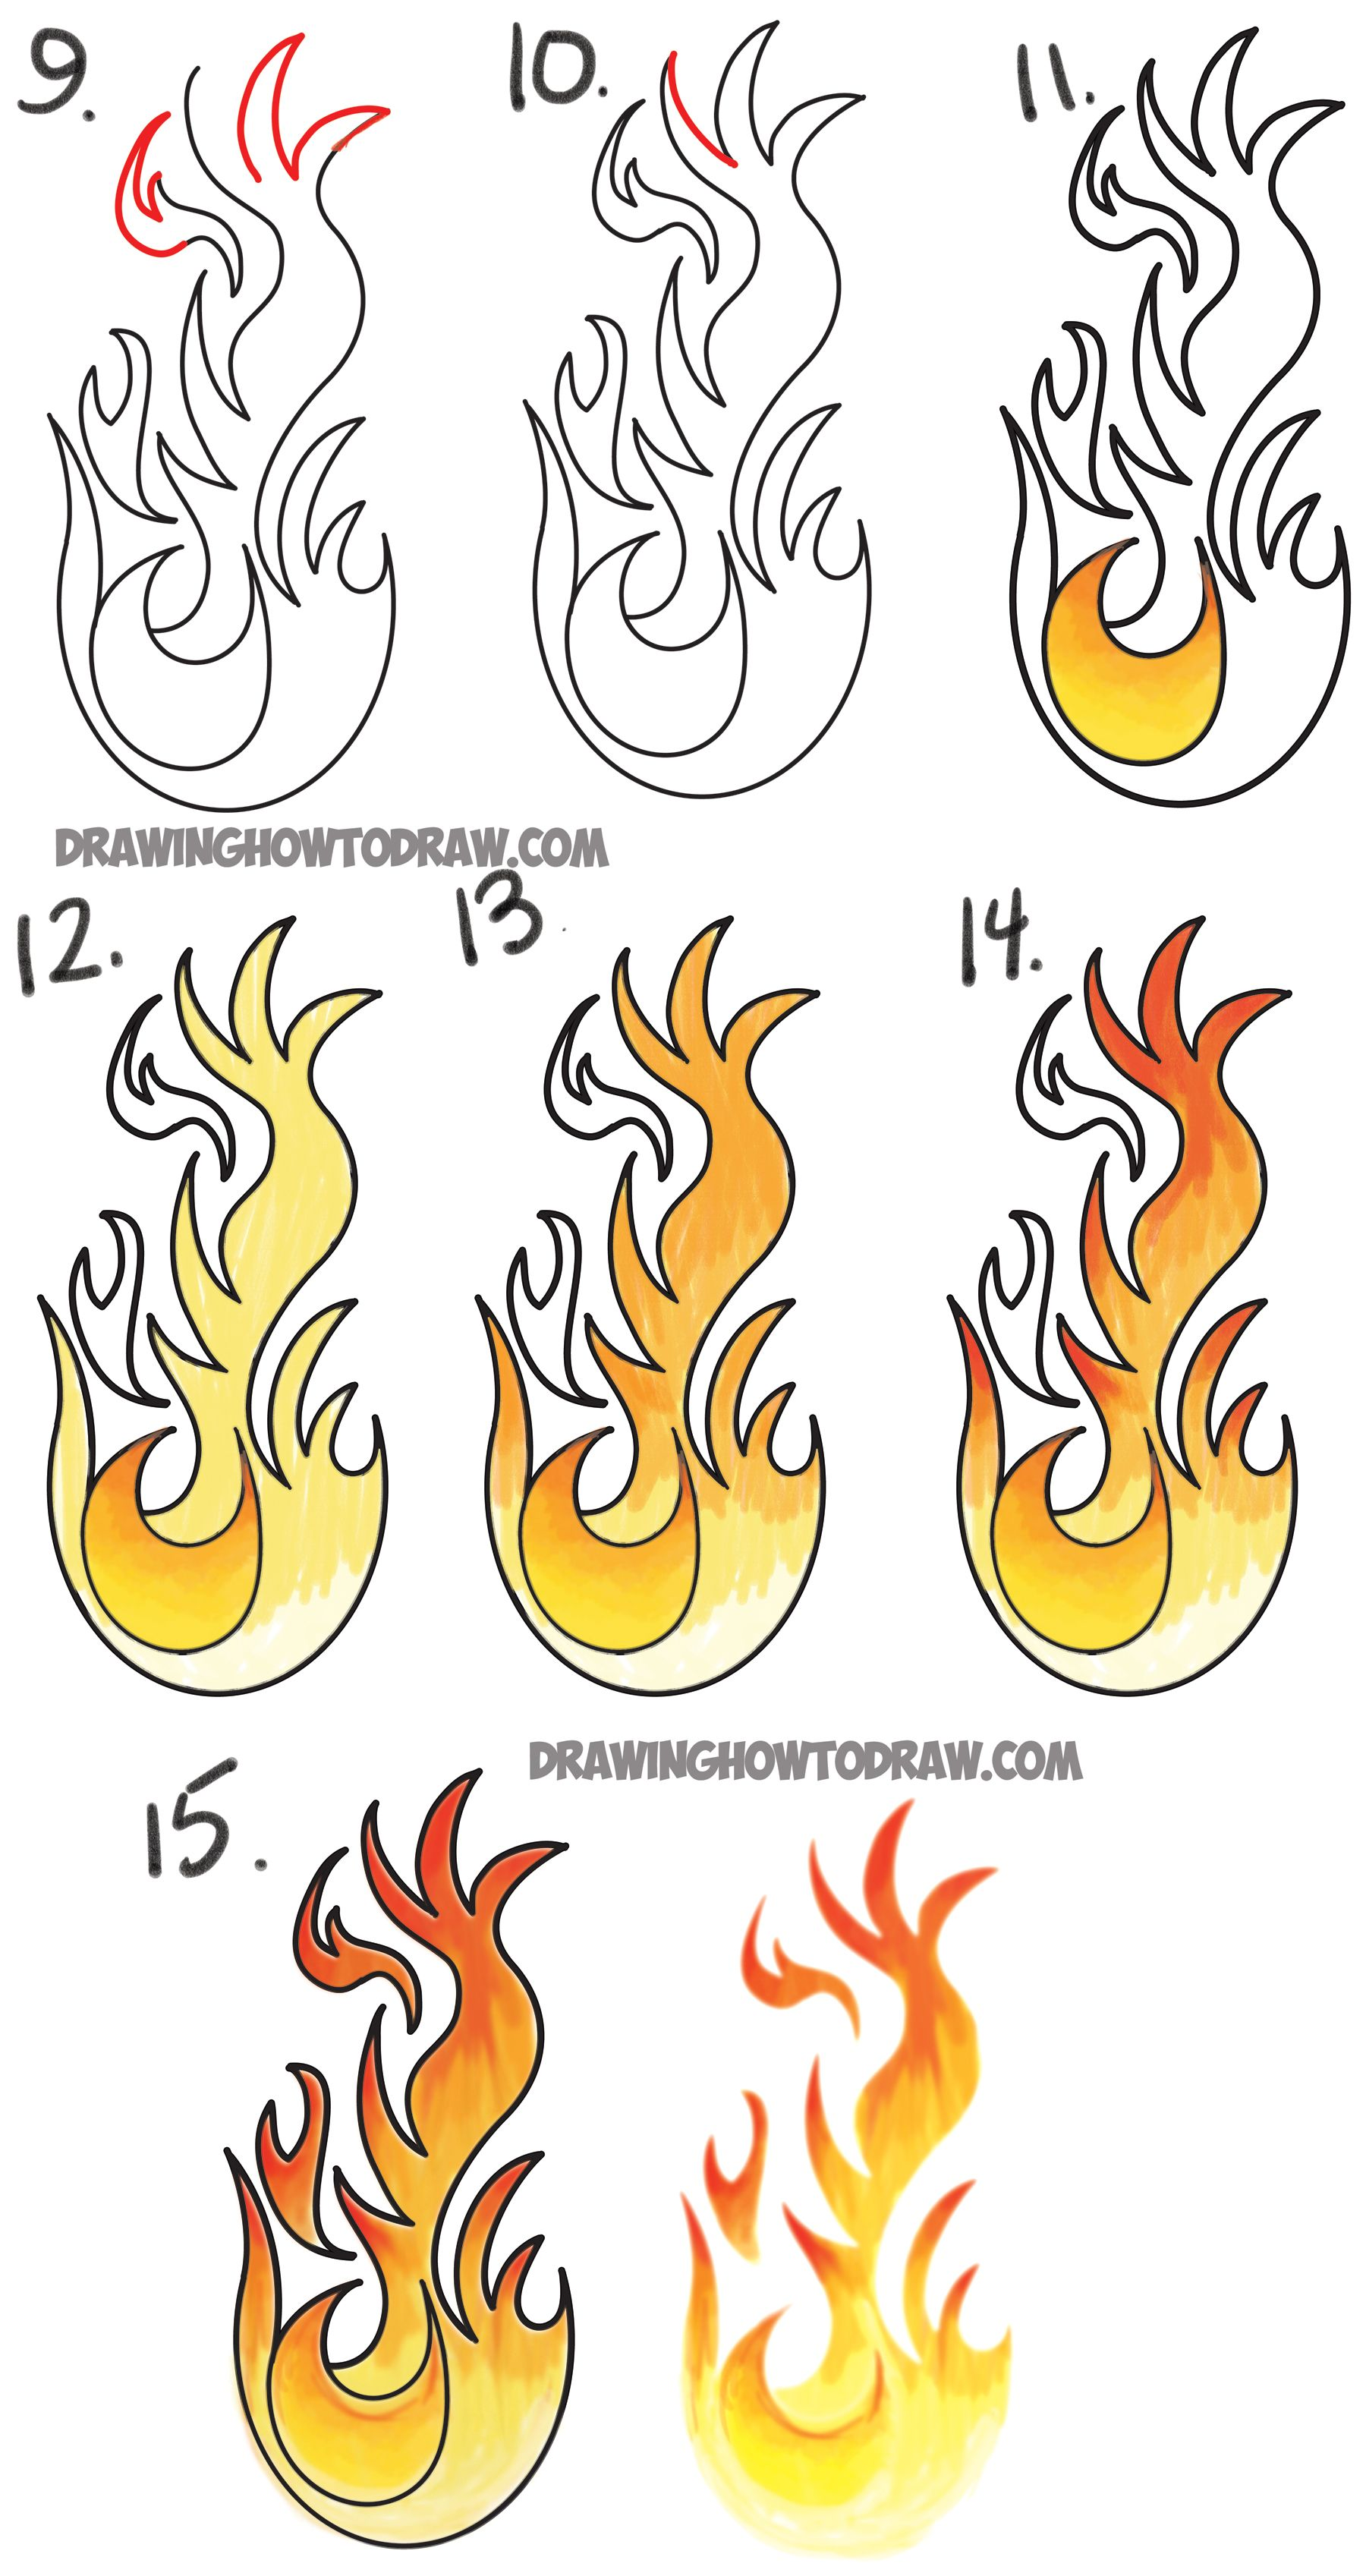 draw flames simple pictures easy drawings and drawing sketches